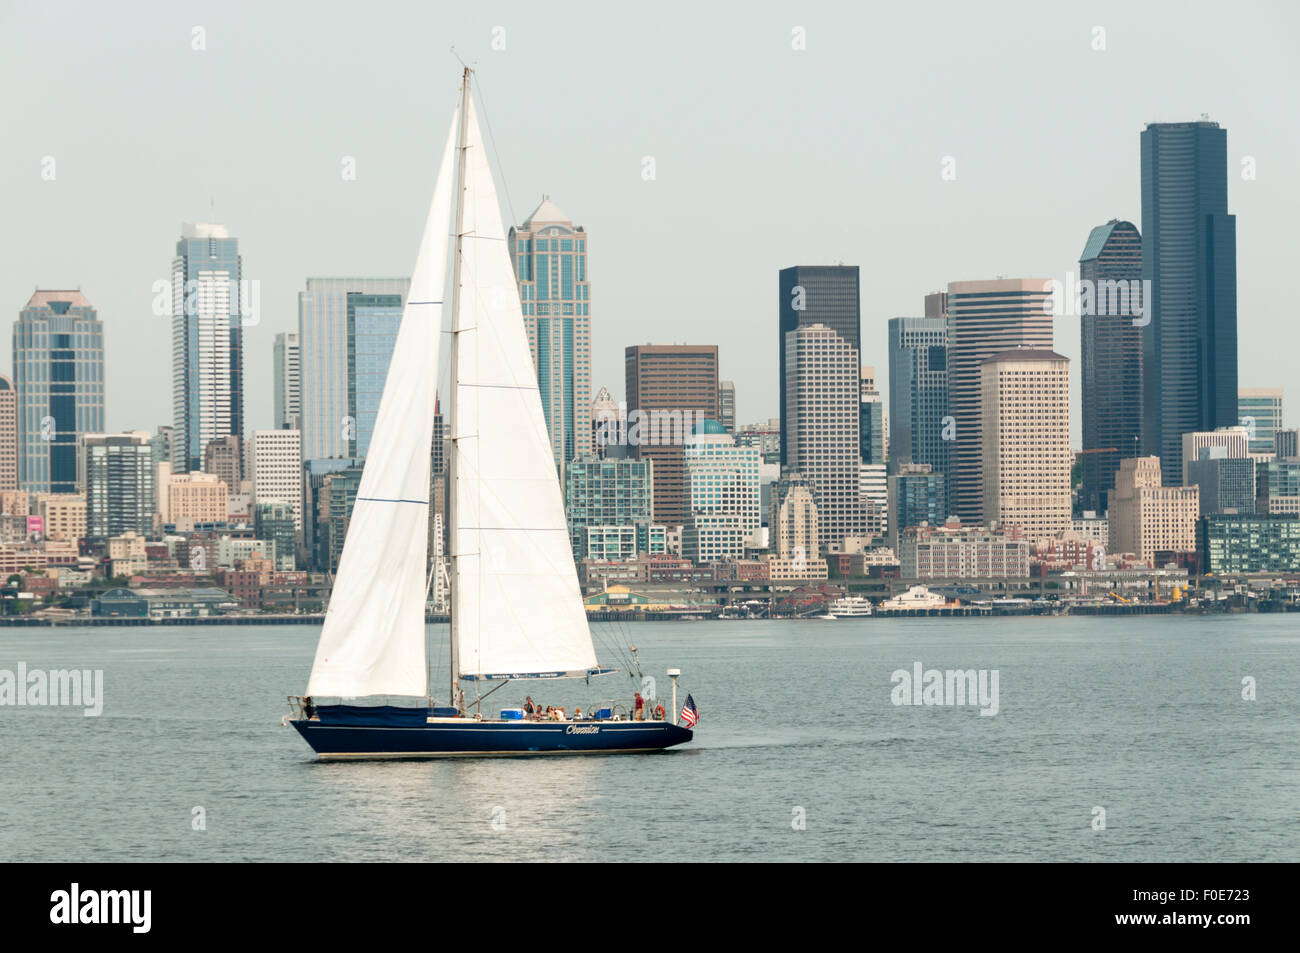 The charter yacht Obsession leaves Elliott Bay with the Seattle skyline in the background. - Stock Image